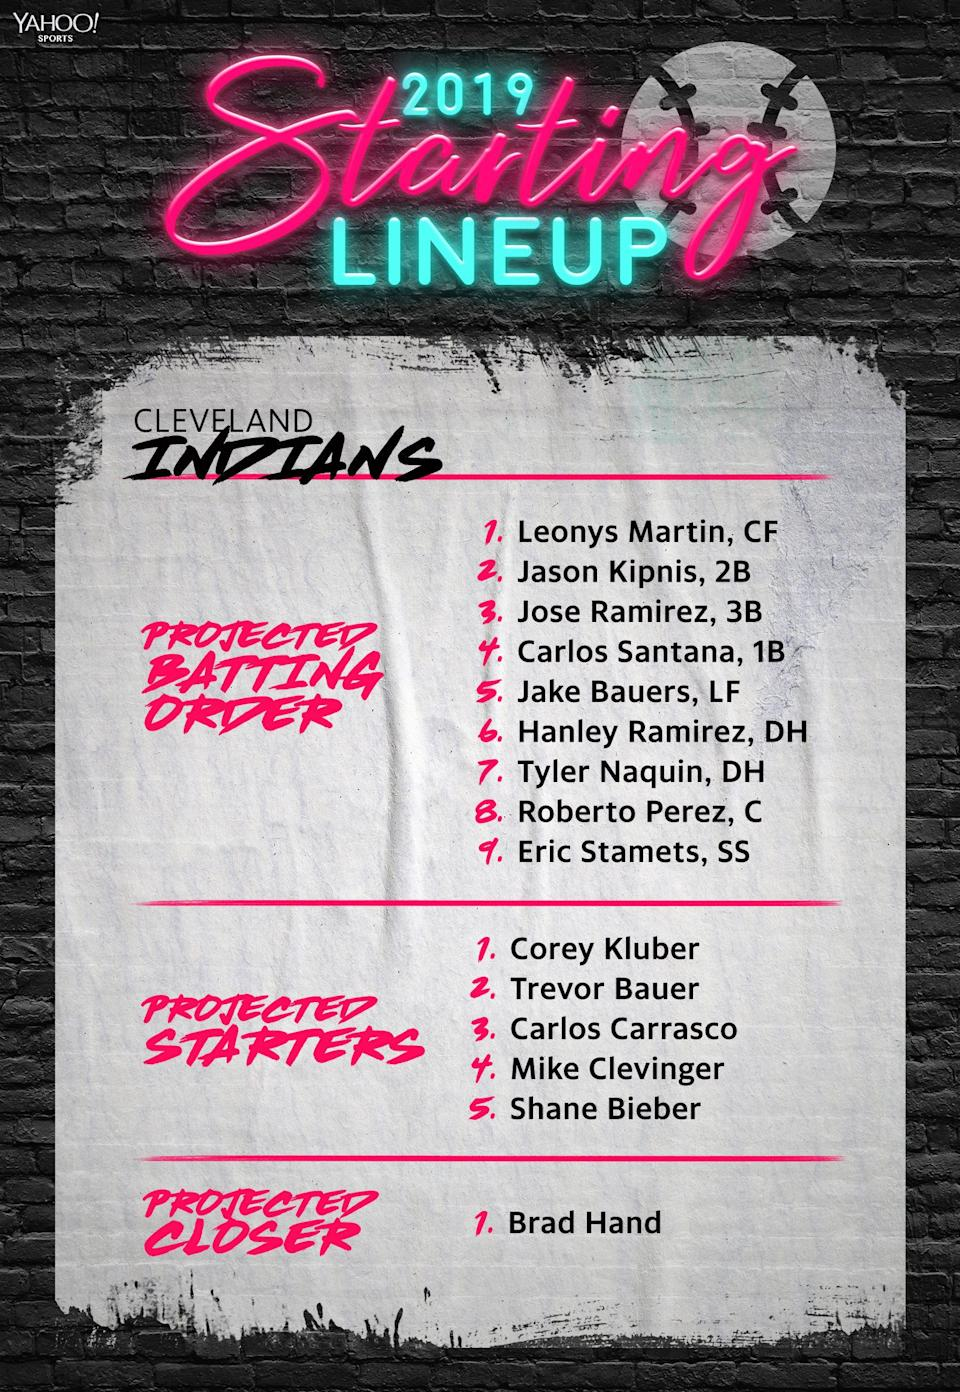 The Cleveland Indians projected lineup for 2019. (Yahoo Sports)